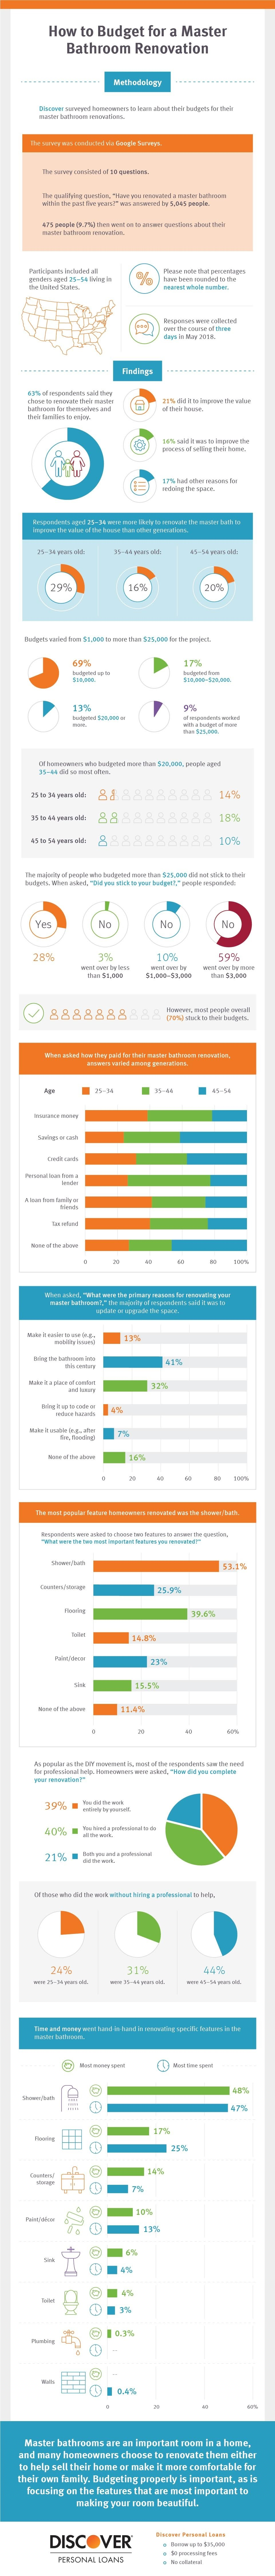 How to Budget for a Master Bathroom Renovation #infographic